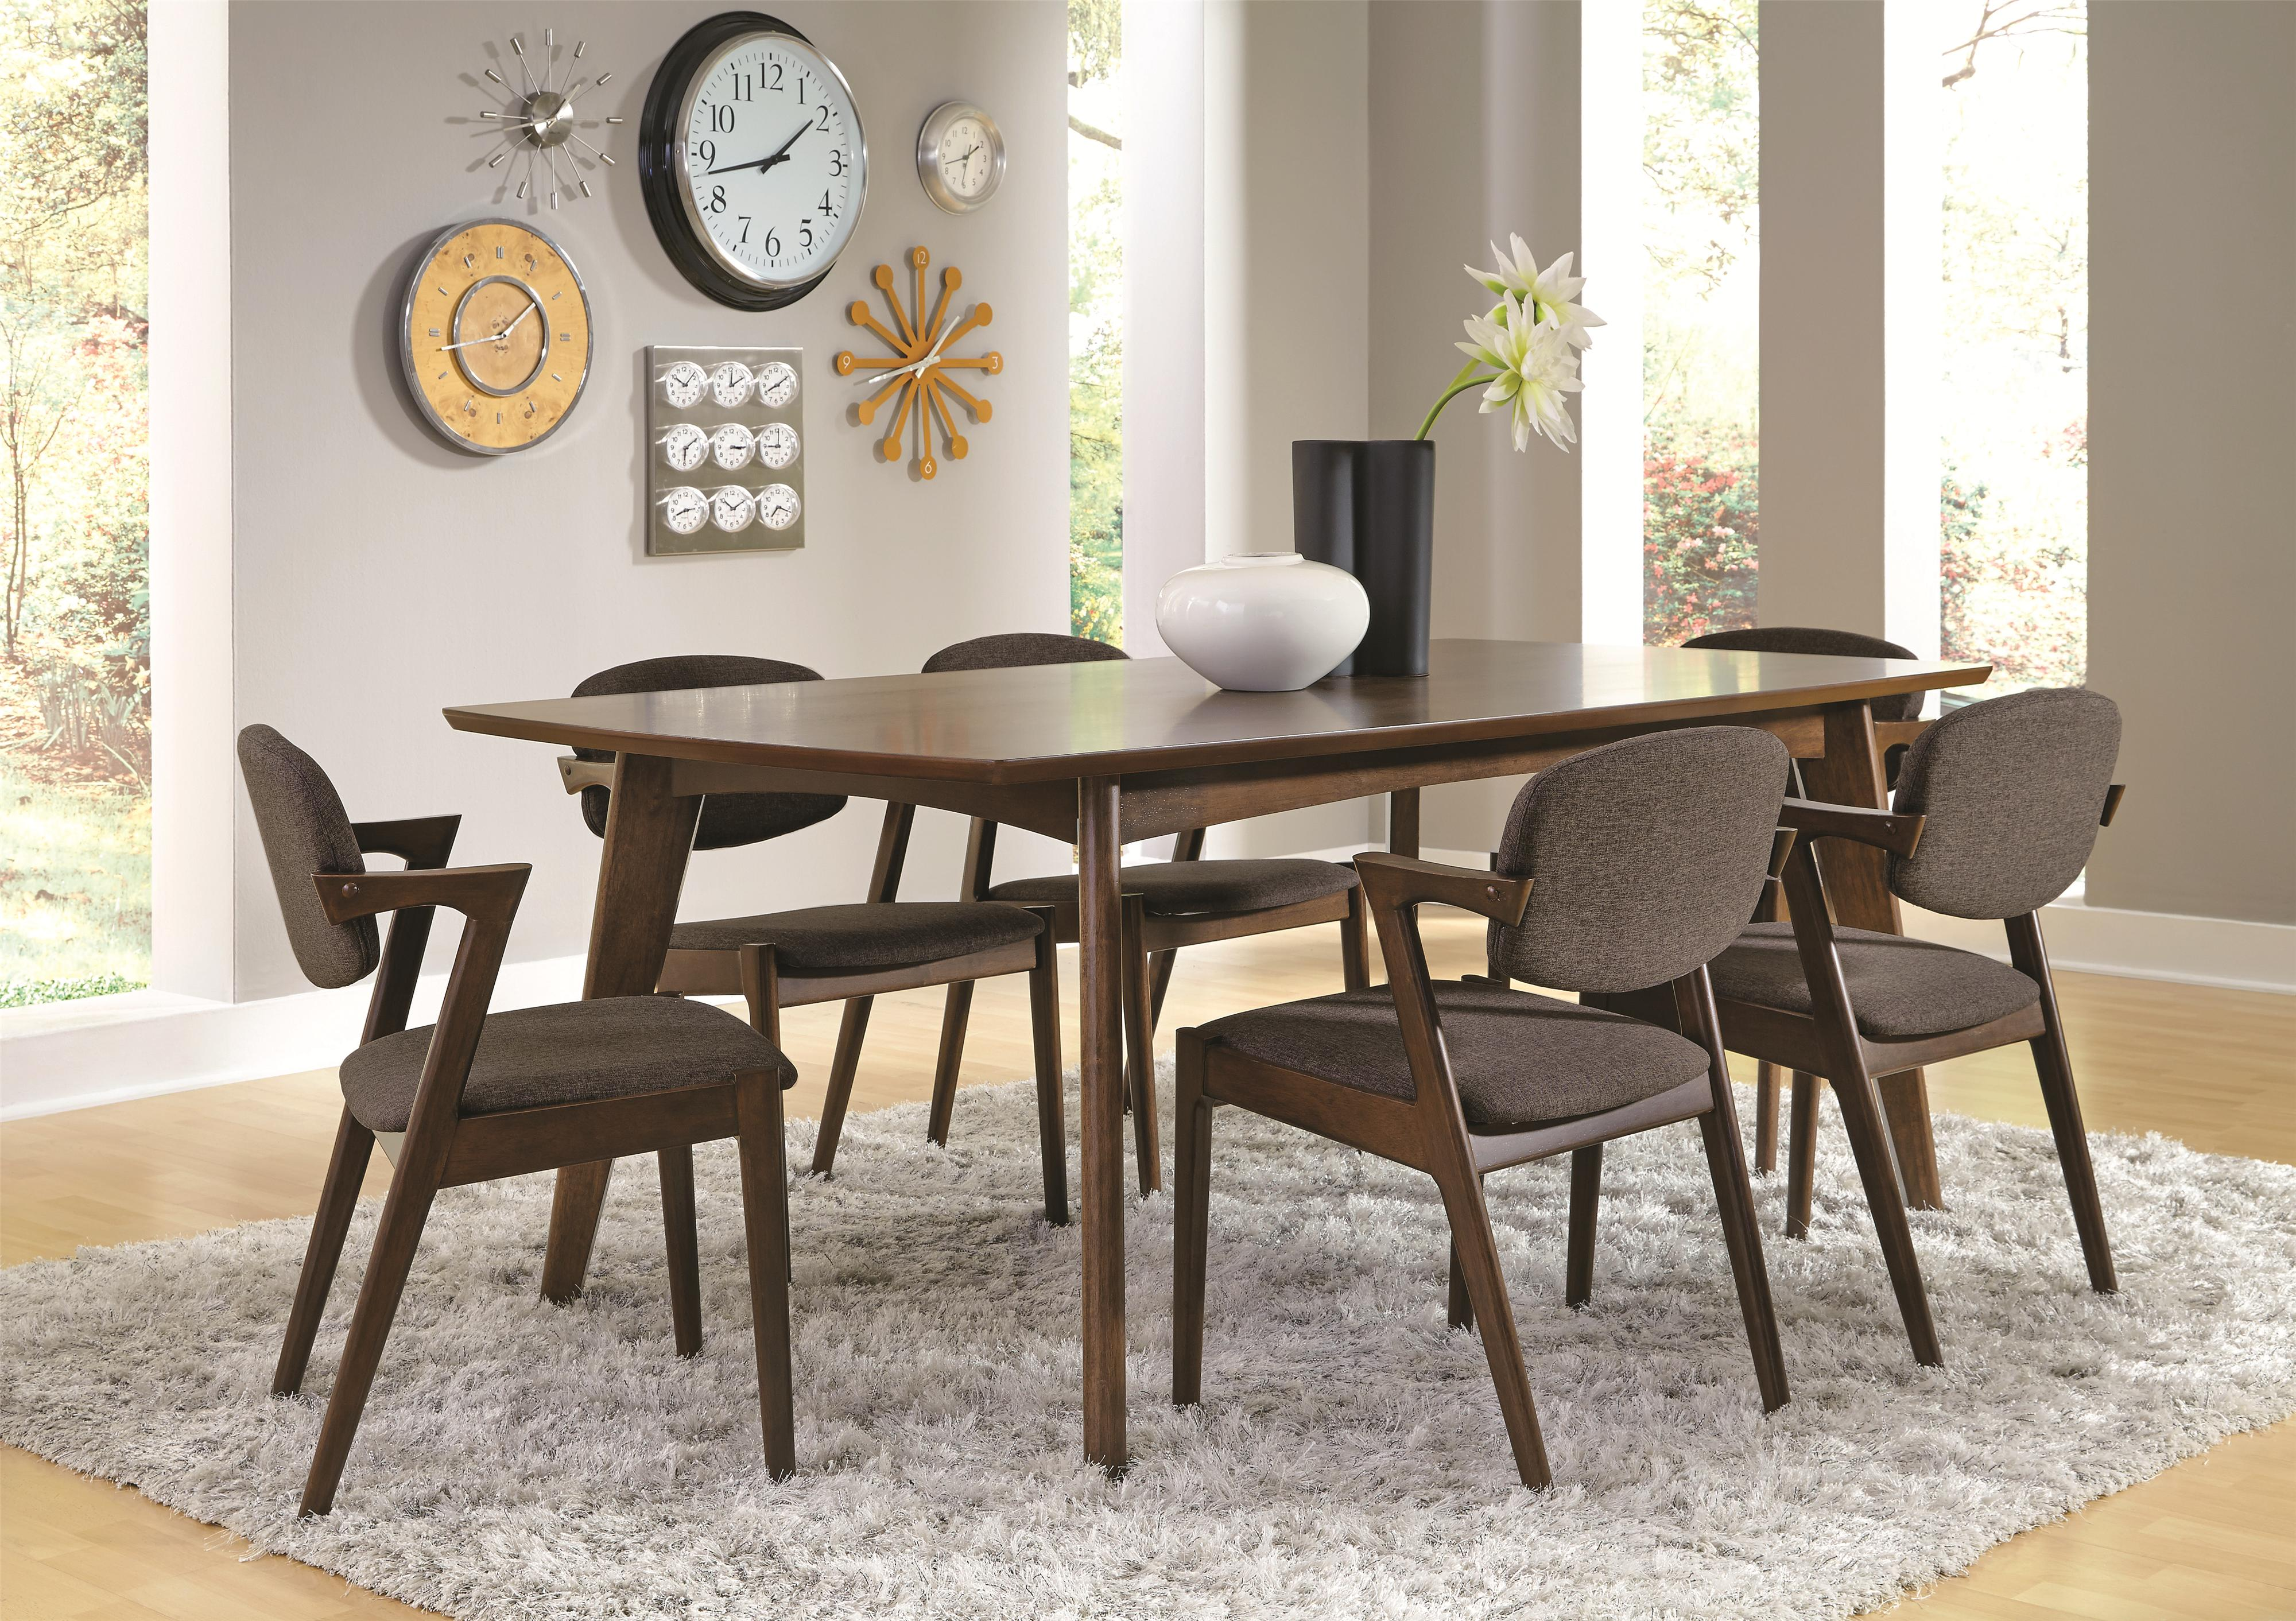 Coaster Malone Midcentury Modern Casual Dining TableCoaster